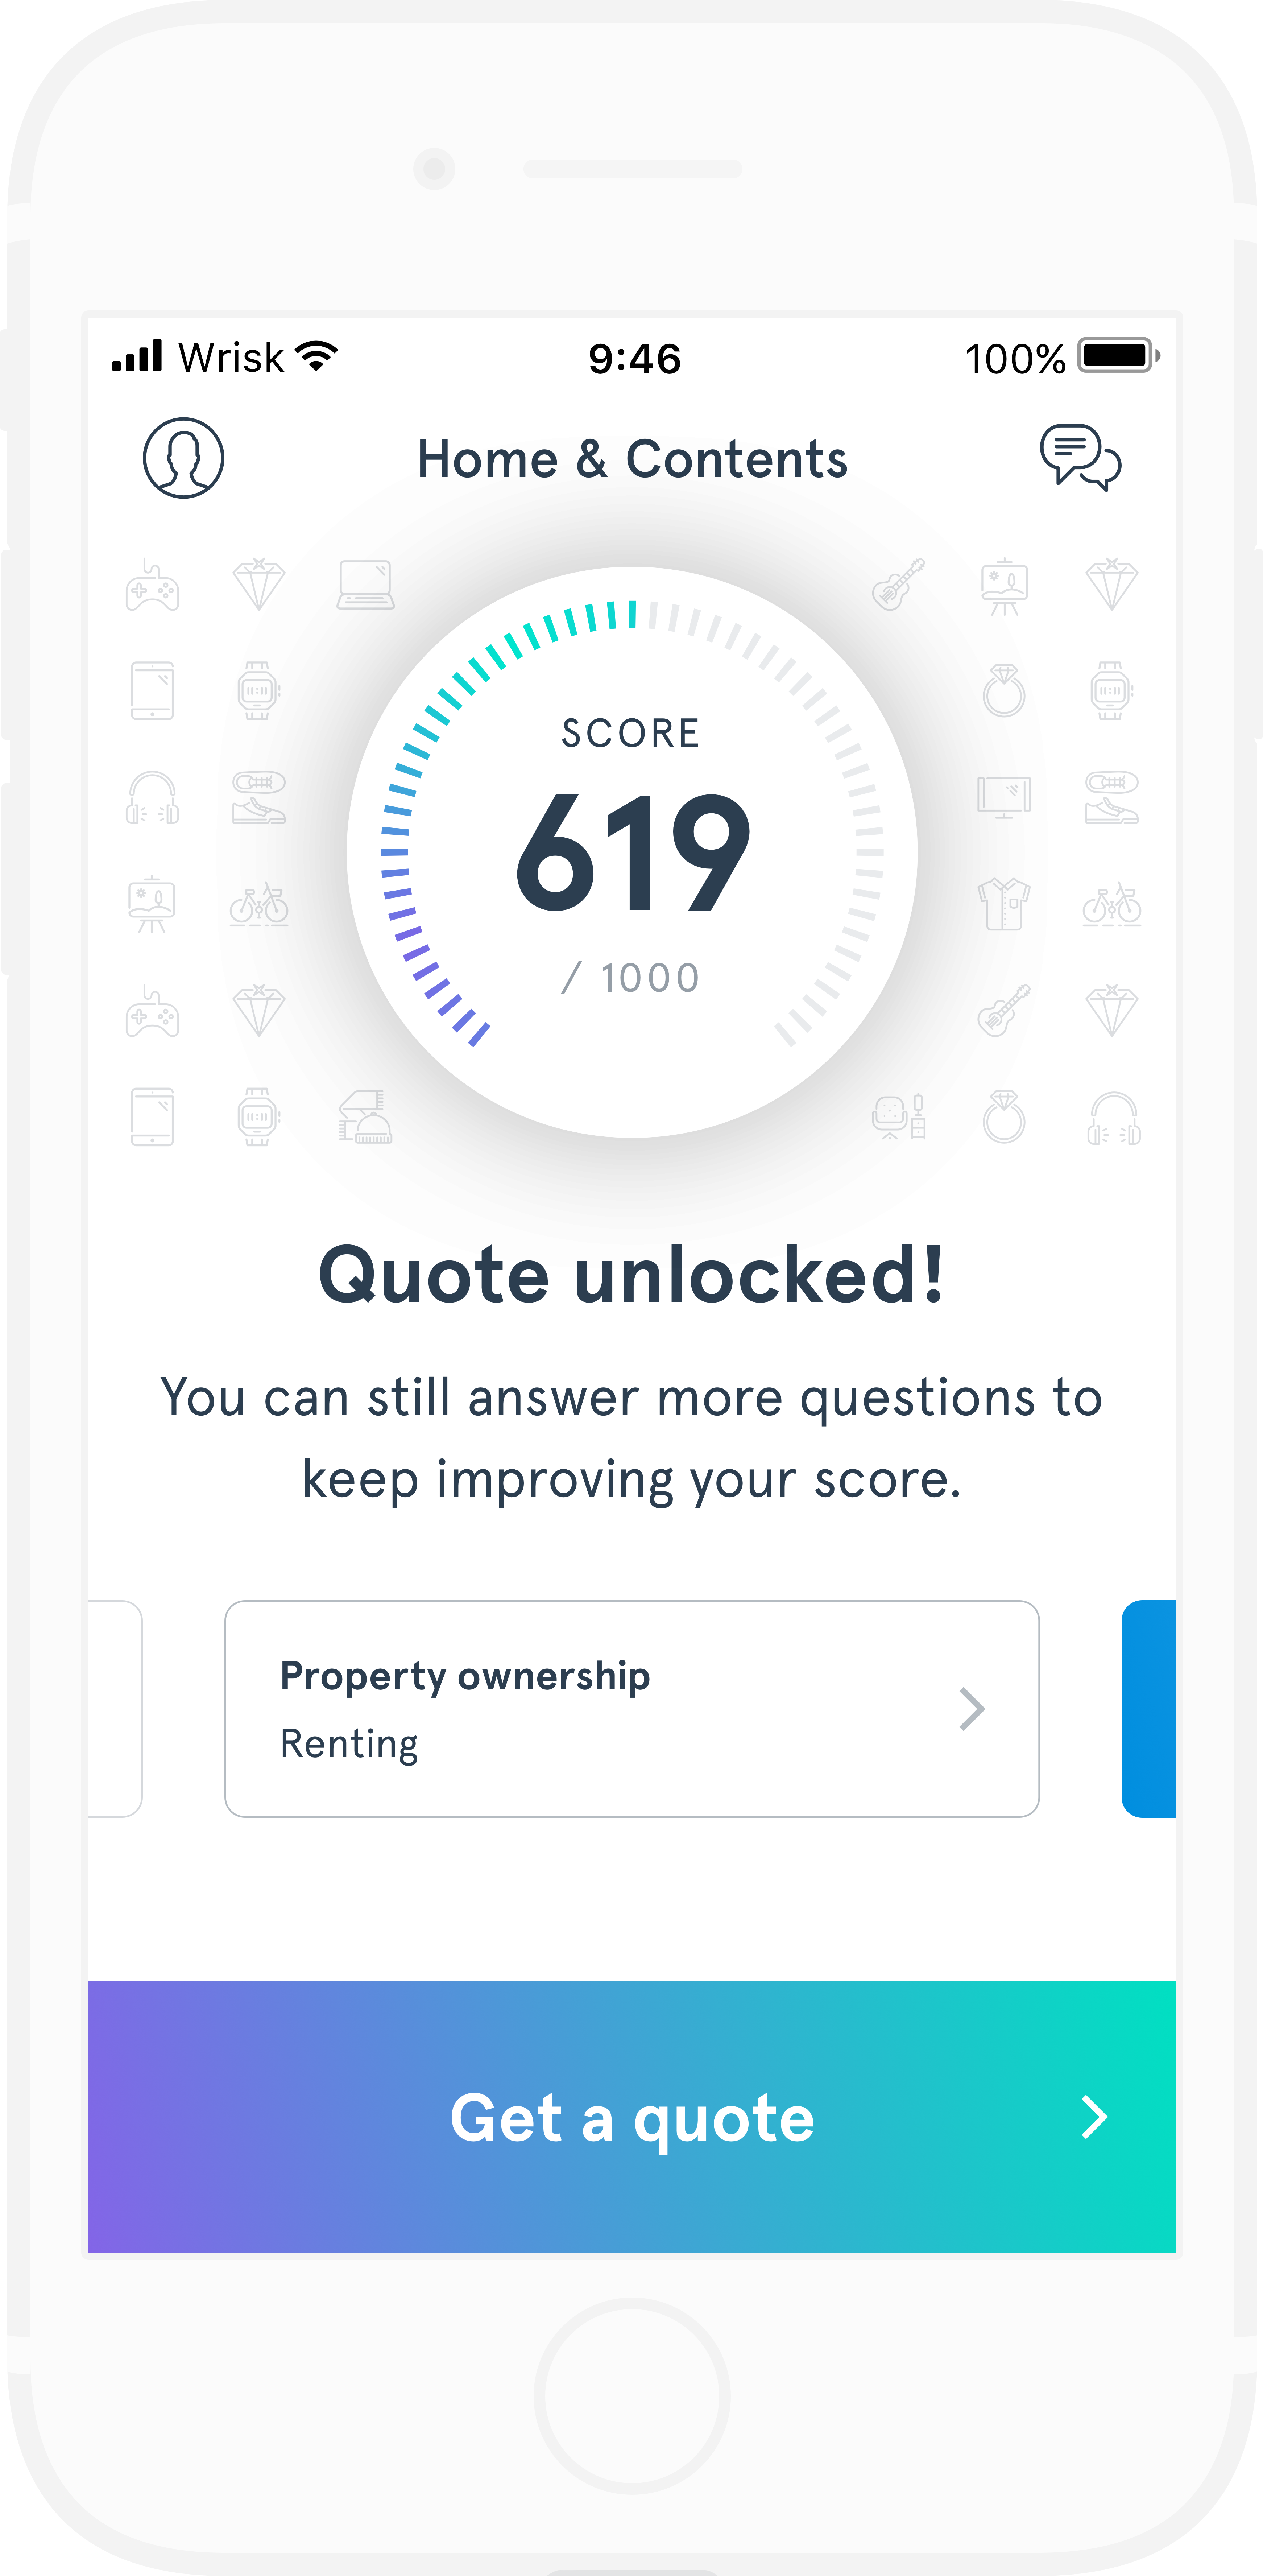 A screenshot of the quote unlocked screen on the Wrisk app